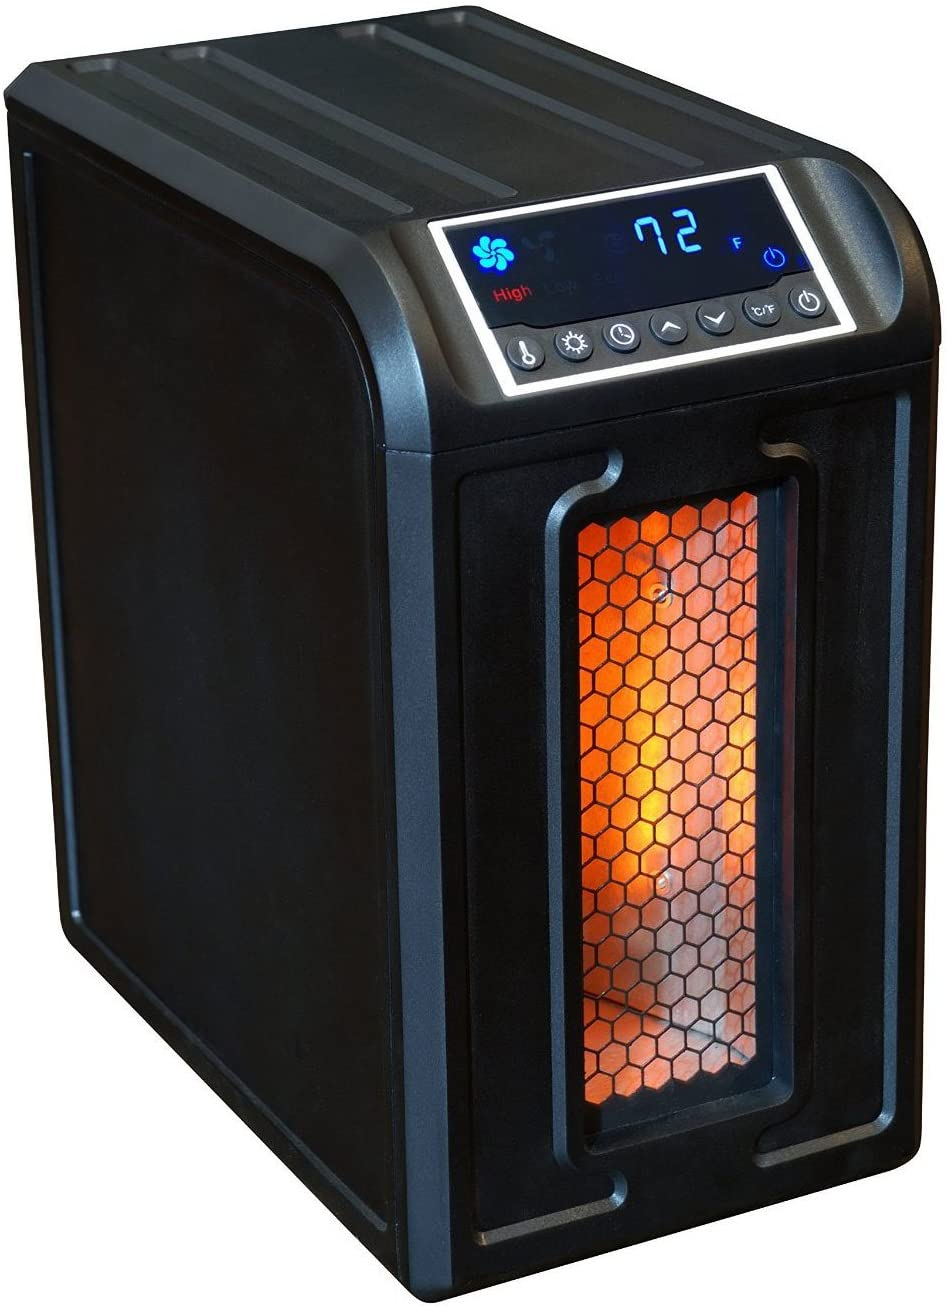 Top 10 Best Infrared Heater 2021 Reviews 5